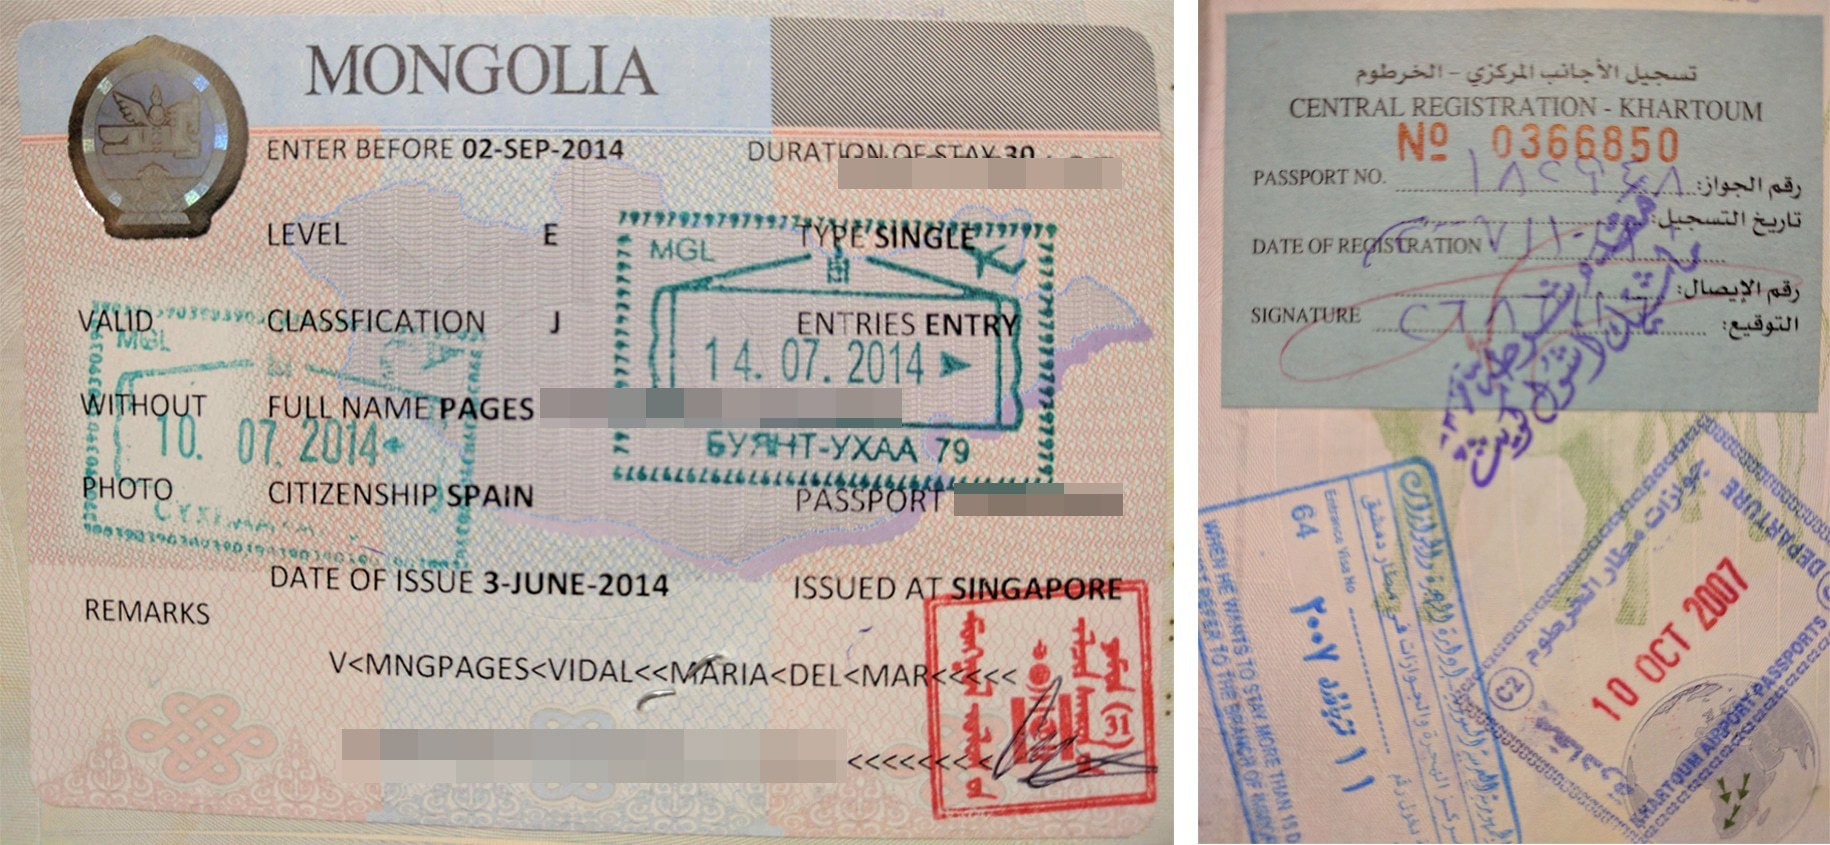 Passport stamp for Mongolia and North Sudan